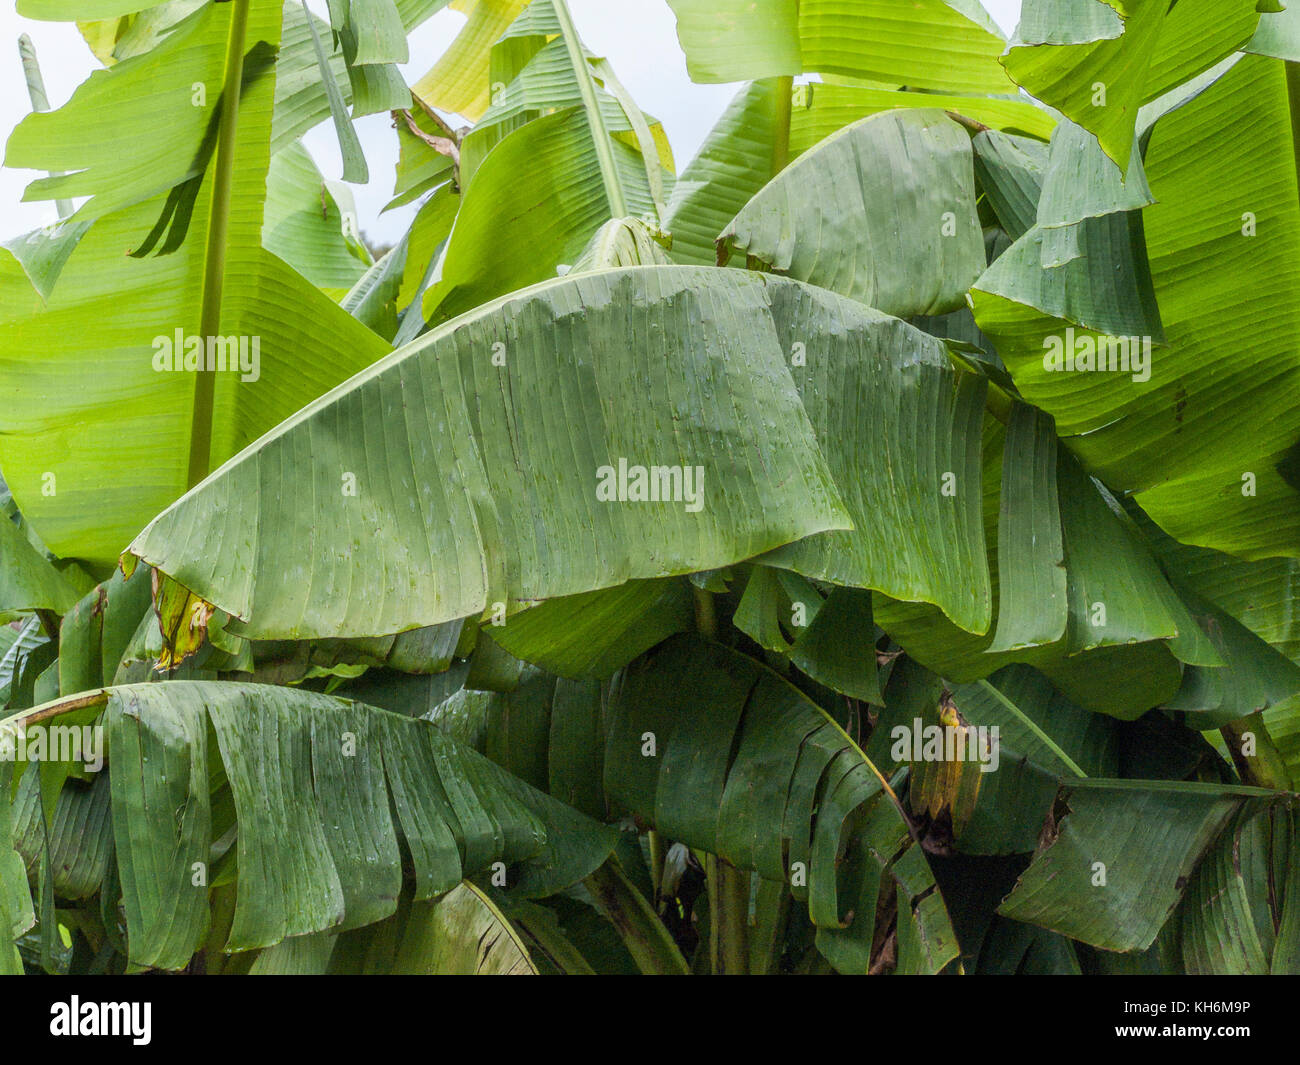 Leaves of a banana palm. Not sure if this one is the traditionally raised species Musa acuminata. - Stock Image